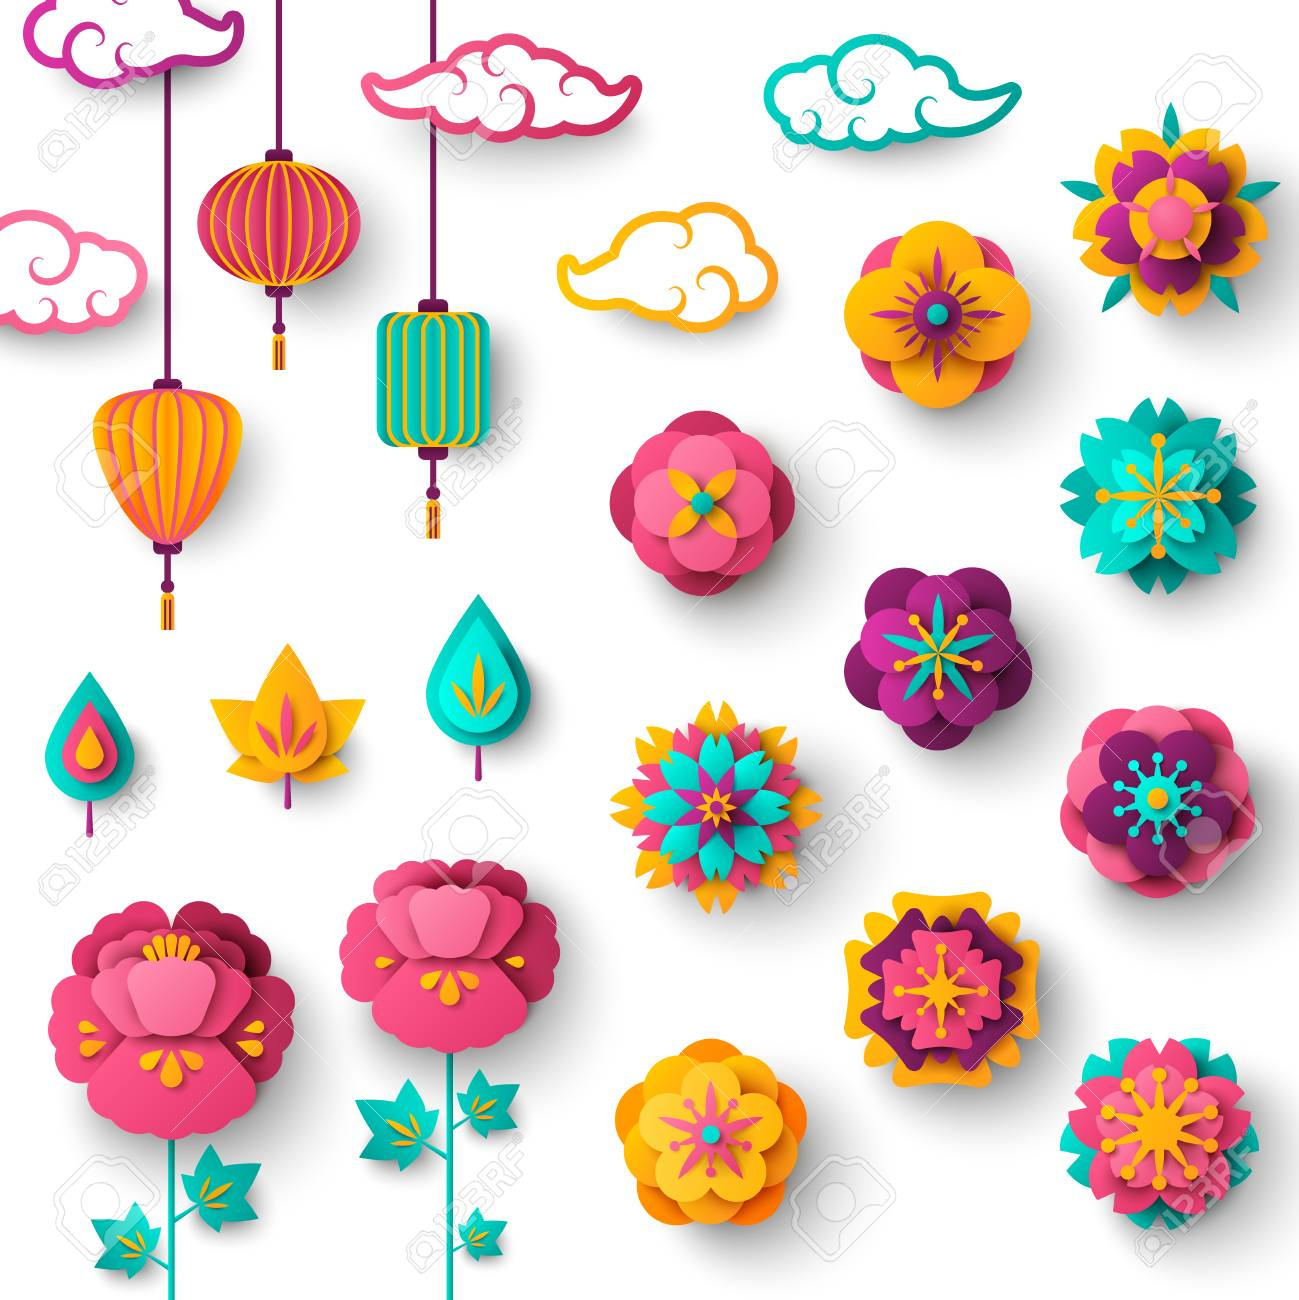 Chinese Decorative Icons Clouds, Flowers and Chinese Lanterns - 89177708